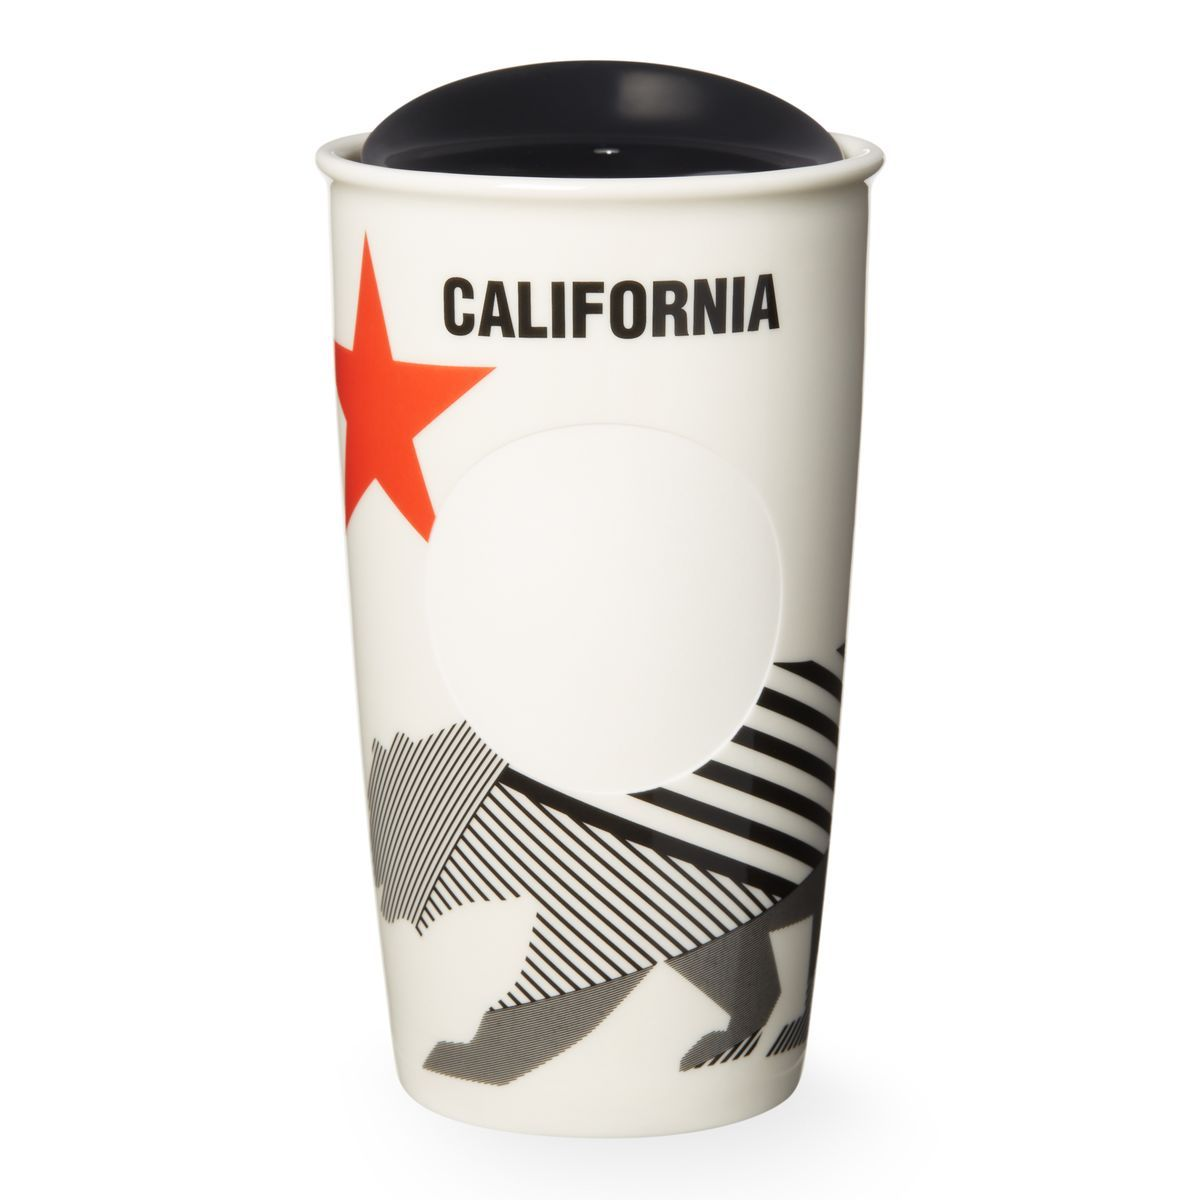 Travel Design Double WalledCeramic Mug Bear A With Inspired By QtrdCshx